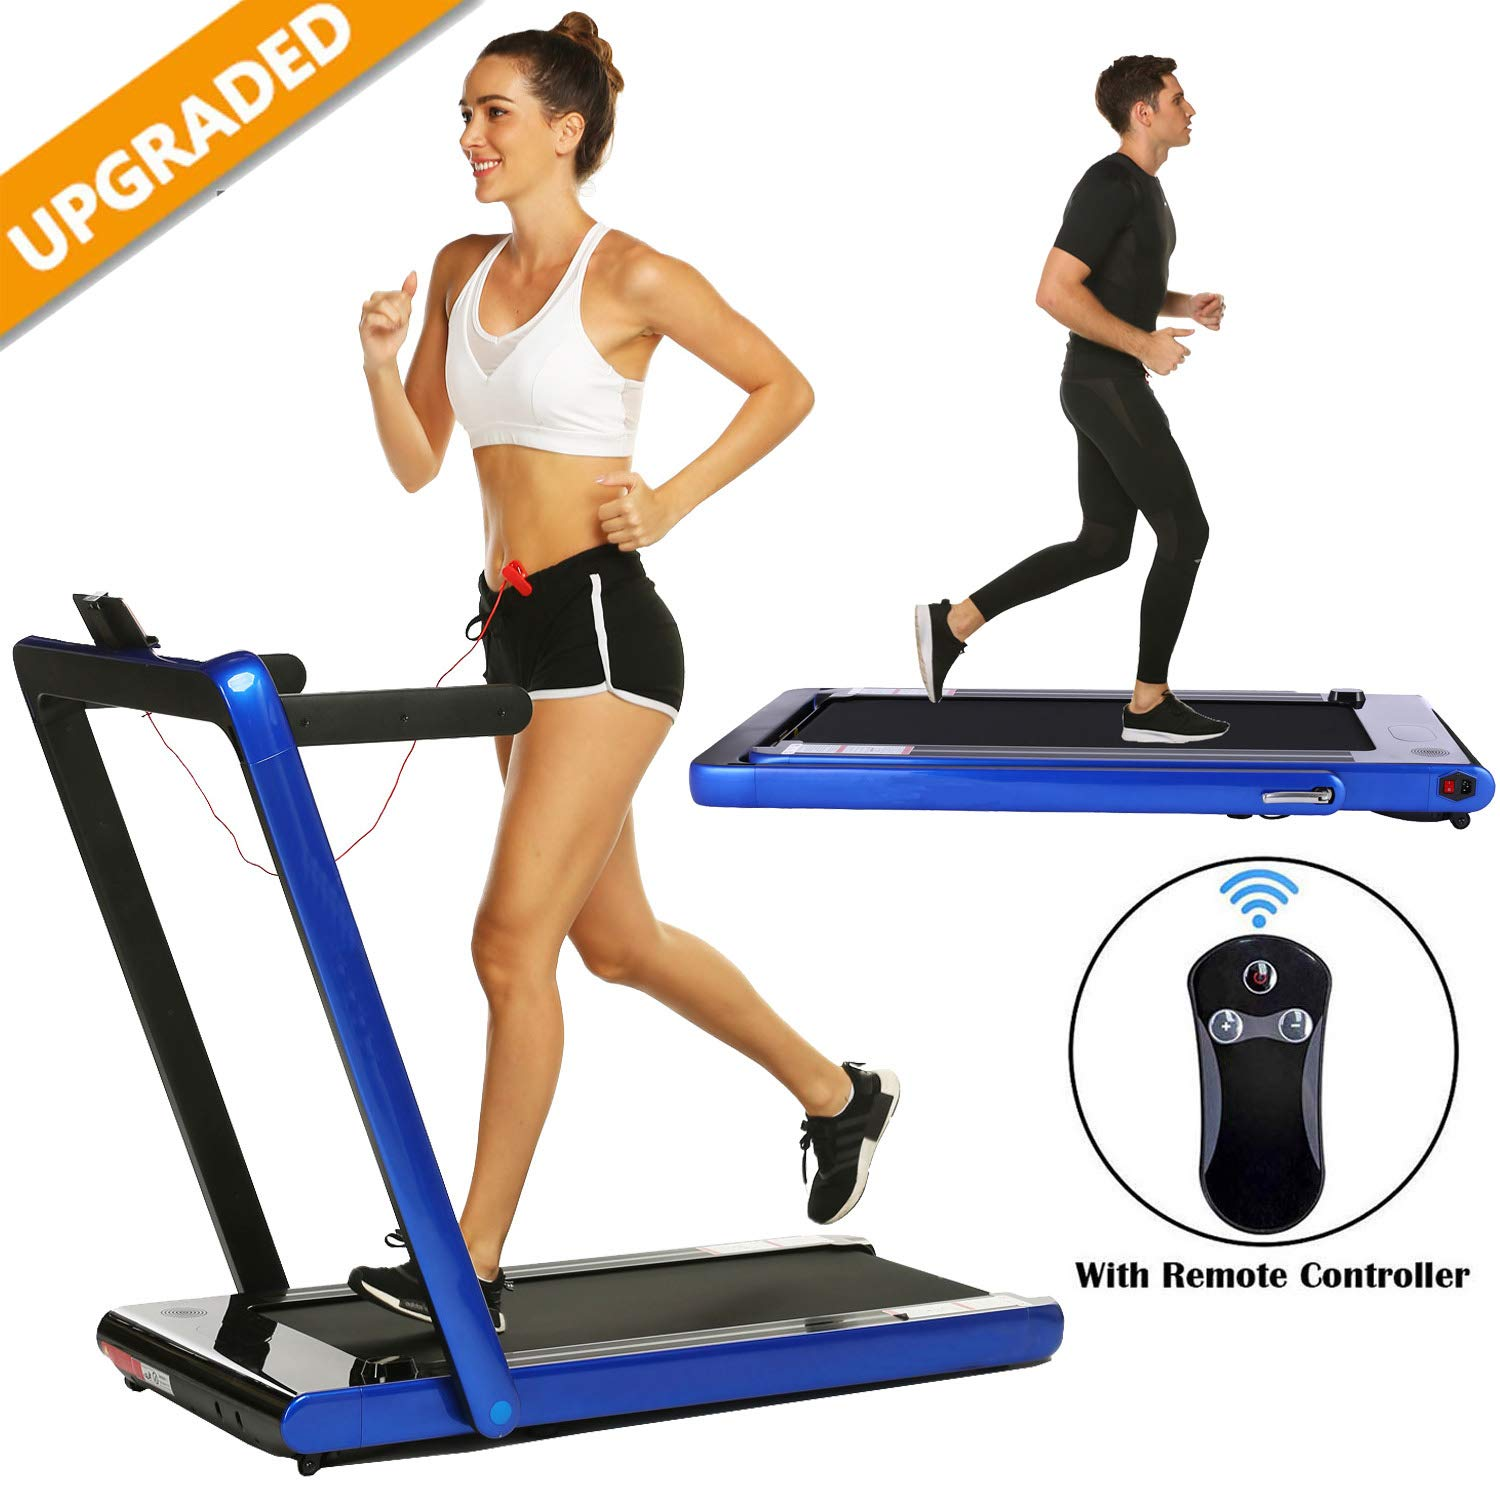 Smart Folding Treadmill,2 in 1 Electric Motorized Treadmills Portable Under Desk Treadmill Walking Jogging Running Exercise Fitness Machine with Remote Controller for Home Gym Office (2.25HP - Blue) by Miageek